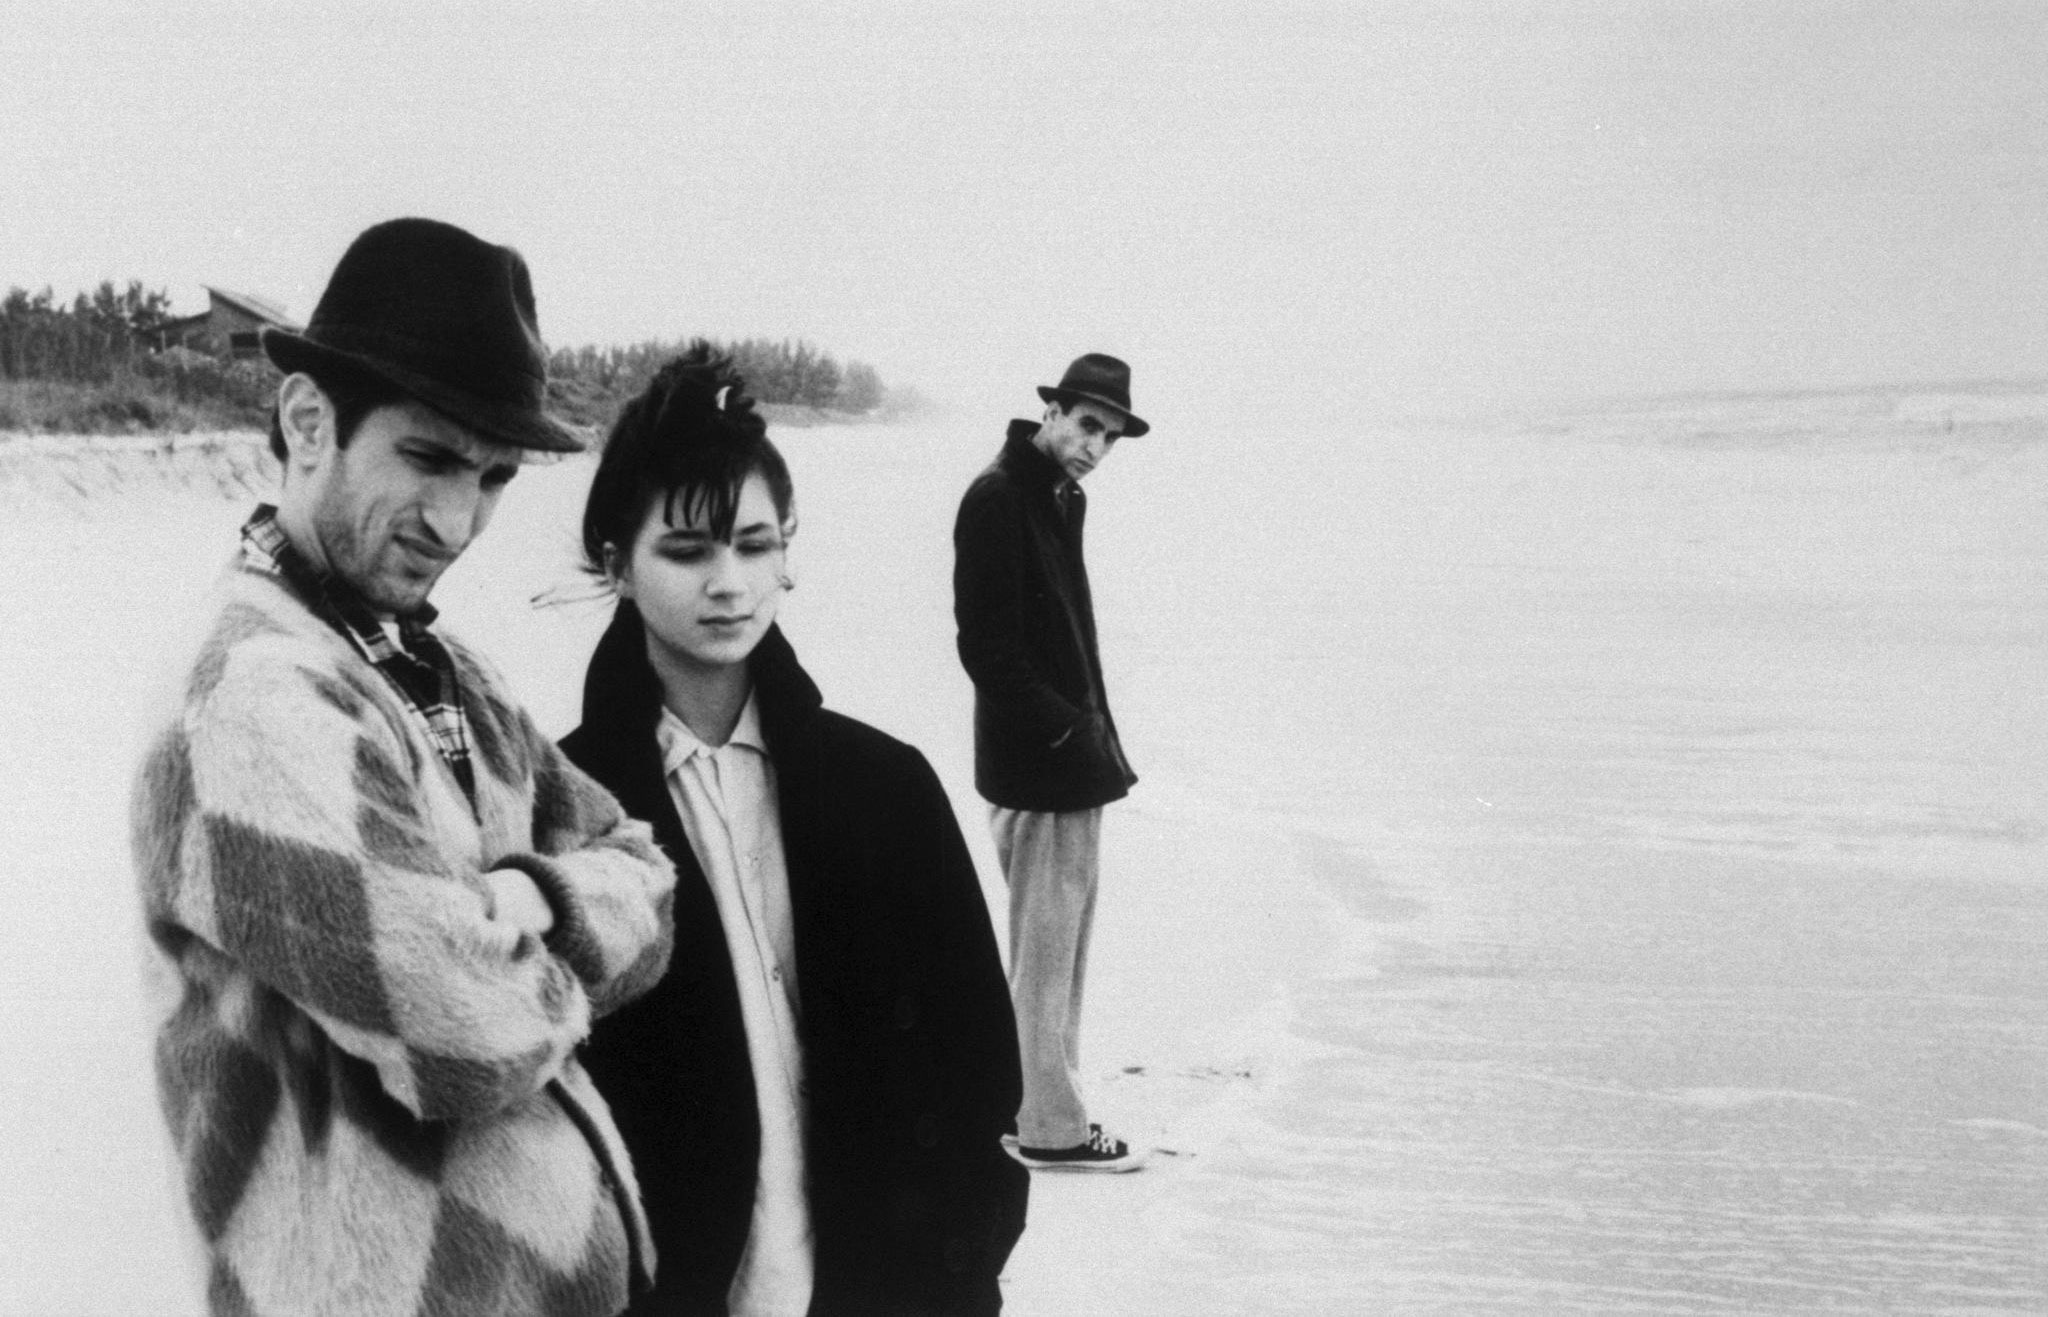 Stranger than Paradise - 1984 - Jim Jarmusch | John Lurie as Willie, Eszter Balint as Eva, Richard Edson as Eddie, Cecillia Stark as Aunt Lotte, Danny Rosen as Billy, Rammellzee as Man With Money, Tom DiCillo as Airline Agent, Richard Boes as Factory Worker, Rockets Redglare, Harvey Perr and Brian J. Burchill as Poker Players, Sara Driver as Girl With Hat, Paul Sloane as Motel Owner | Directed by Jim Jarmusch, Produced by Sara Driver, Written by Jim Jarmusch, Starring, John Lurie, Eszter Balint, Richard Edson, Cecillia Stark, Music by John Lurie, Cinematography Tom DiCillo, Edited by Jim Jarmusch, Melody London, Production company Cinesthesia Productions Inc., Distributed by The Samuel Goldwyn Company, Release dates 1984, Running time 89 minutes, Country United States, West Germany, Language English, Hungarian | Informations, Cast, Video, Dvd Covers, Film Posters, Photographs